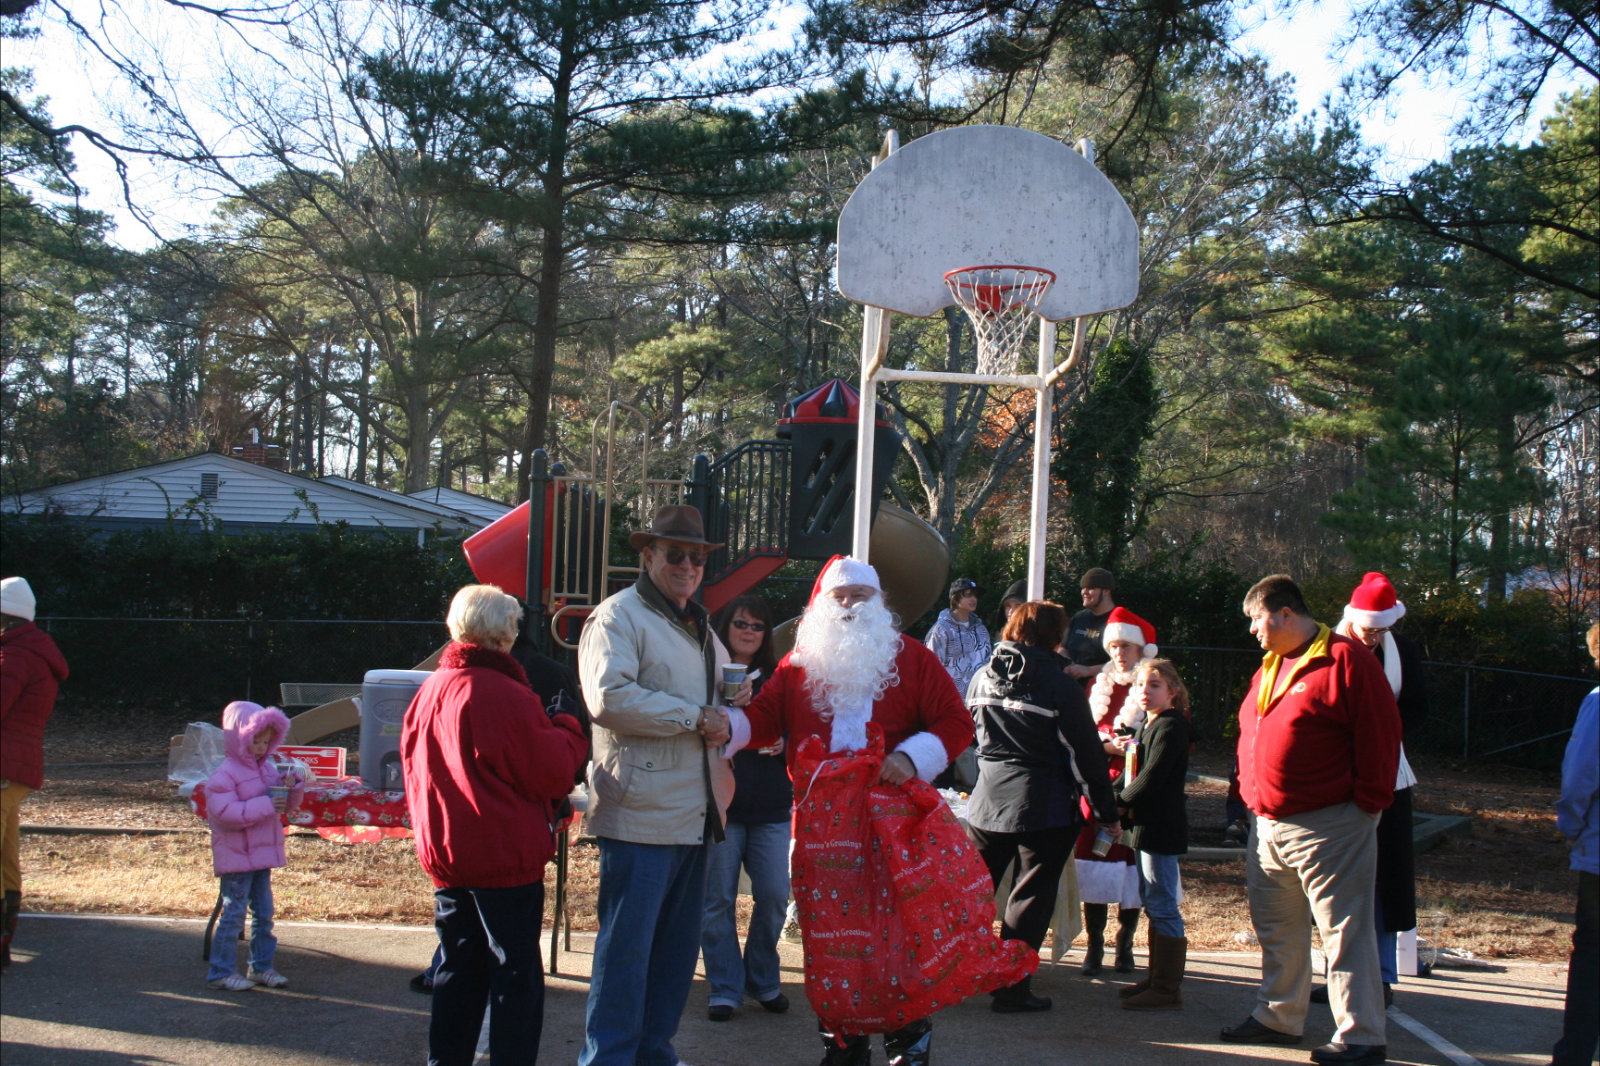 Image of Santa and Friends in the Park